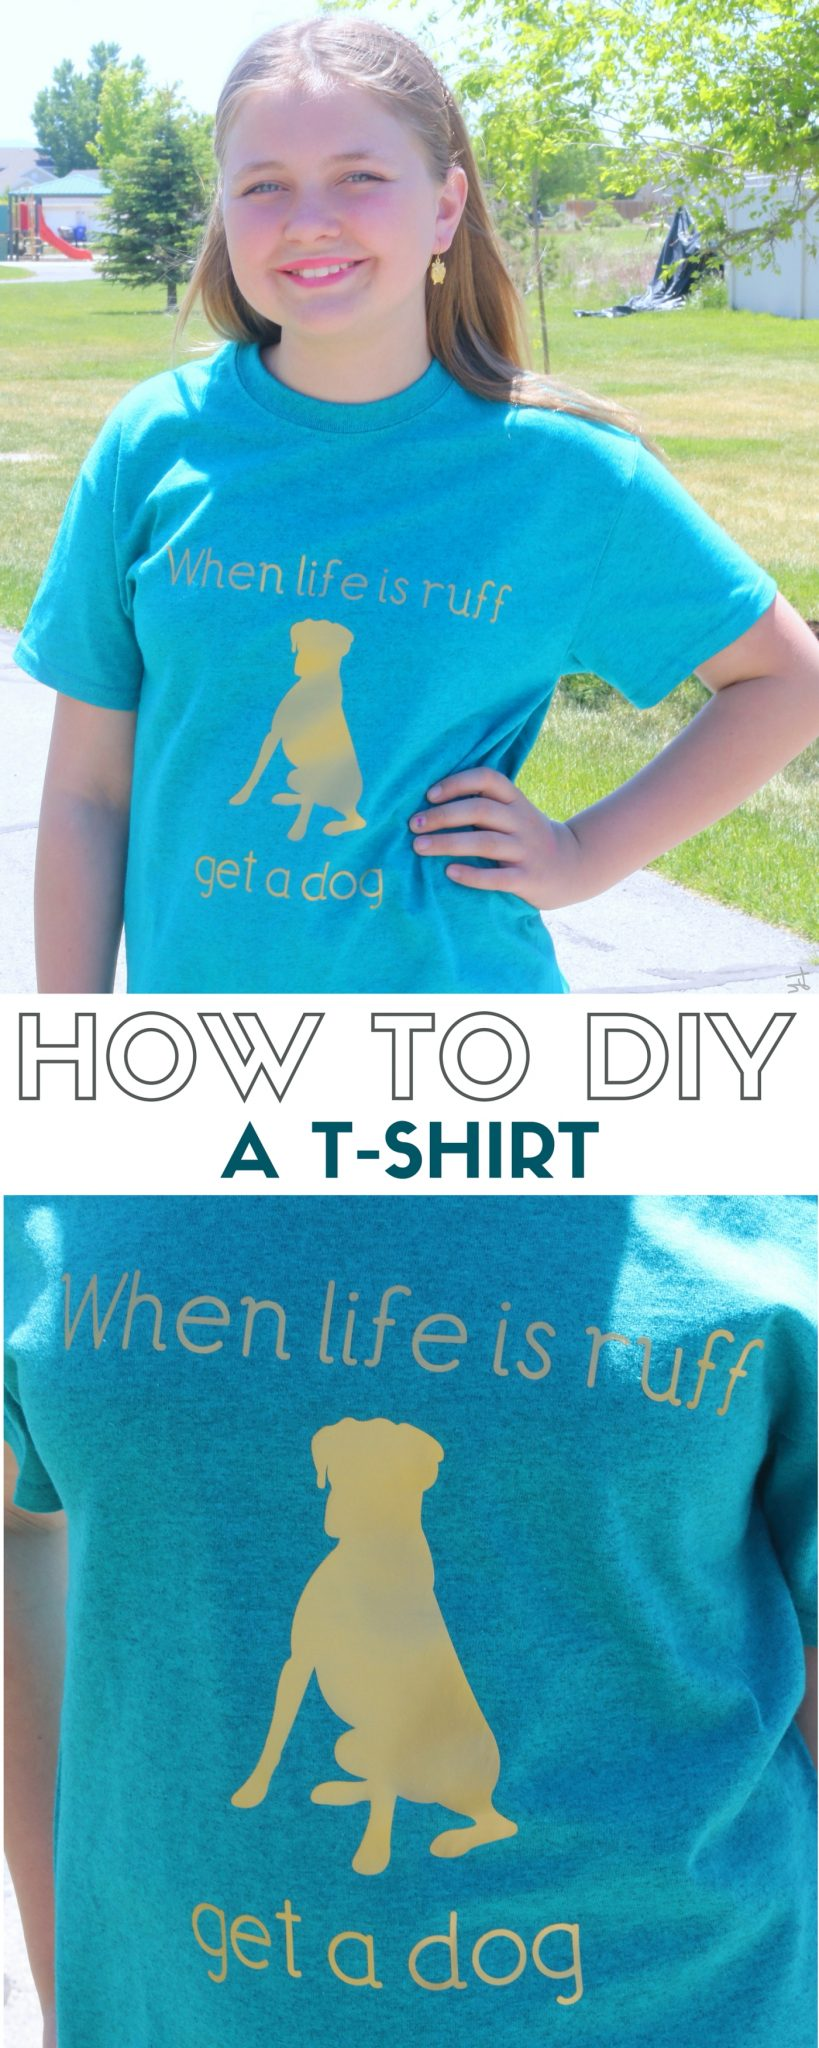 How to DIY a T-shirt with Iron-on Transfer - The Crafty Blog Stalker